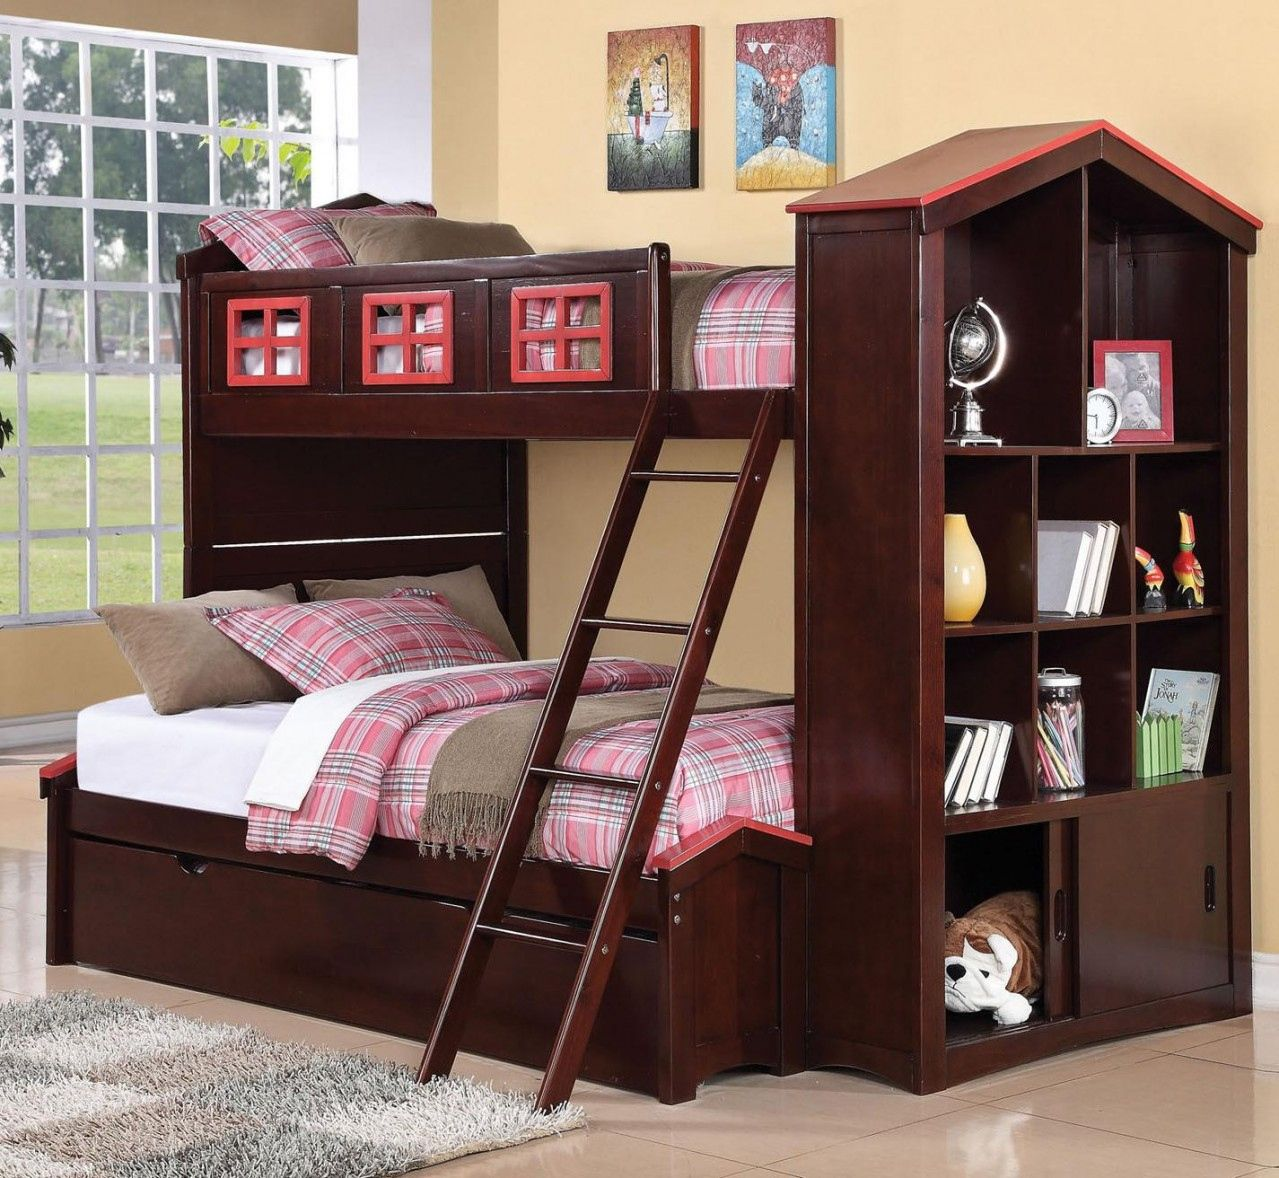 single with color espresso mission storage zoom drawers double bed beds bunk b